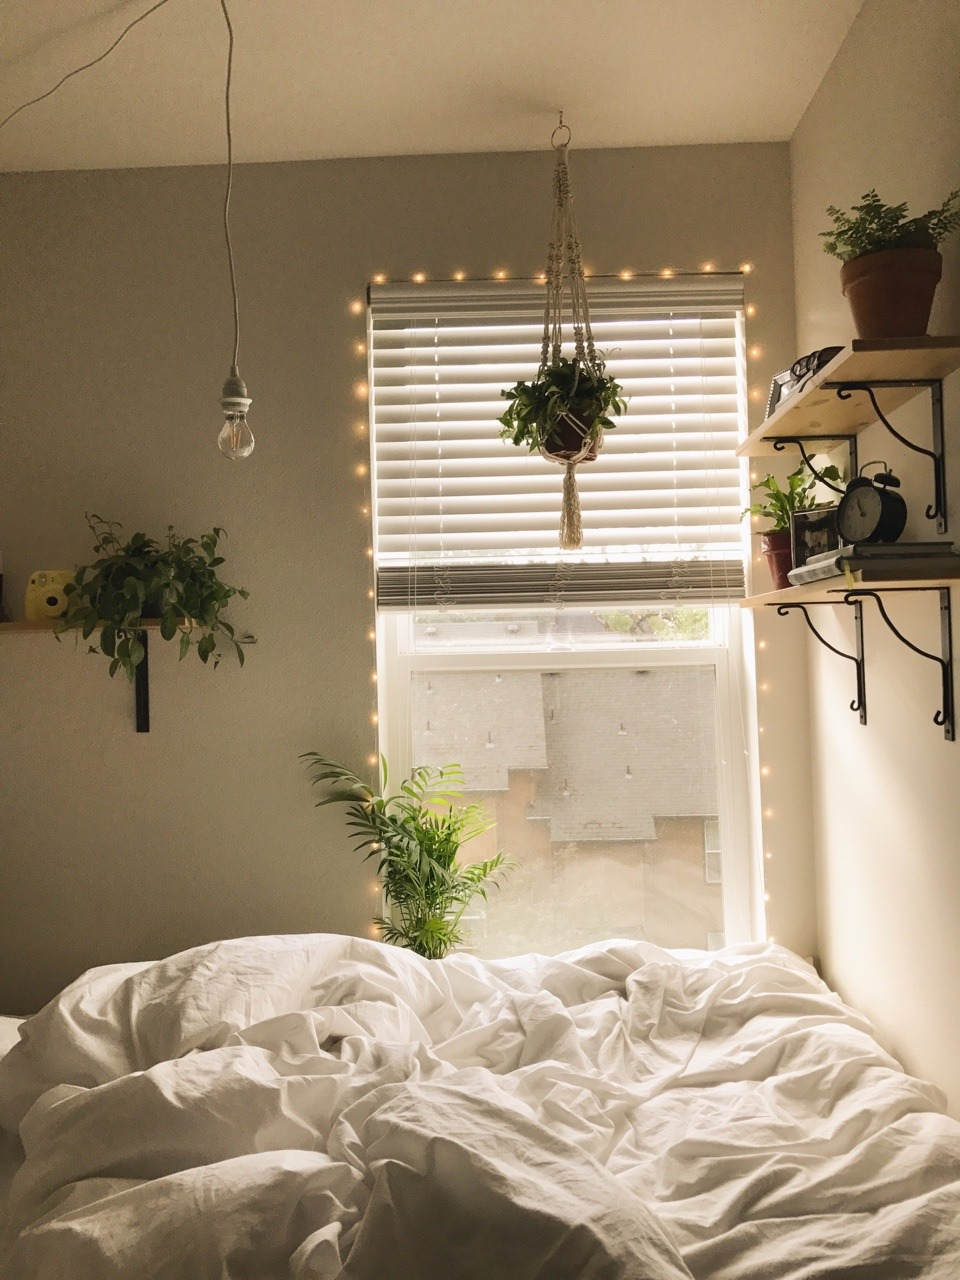 Bedrooms Tumblr Room Inspiration Tumblr